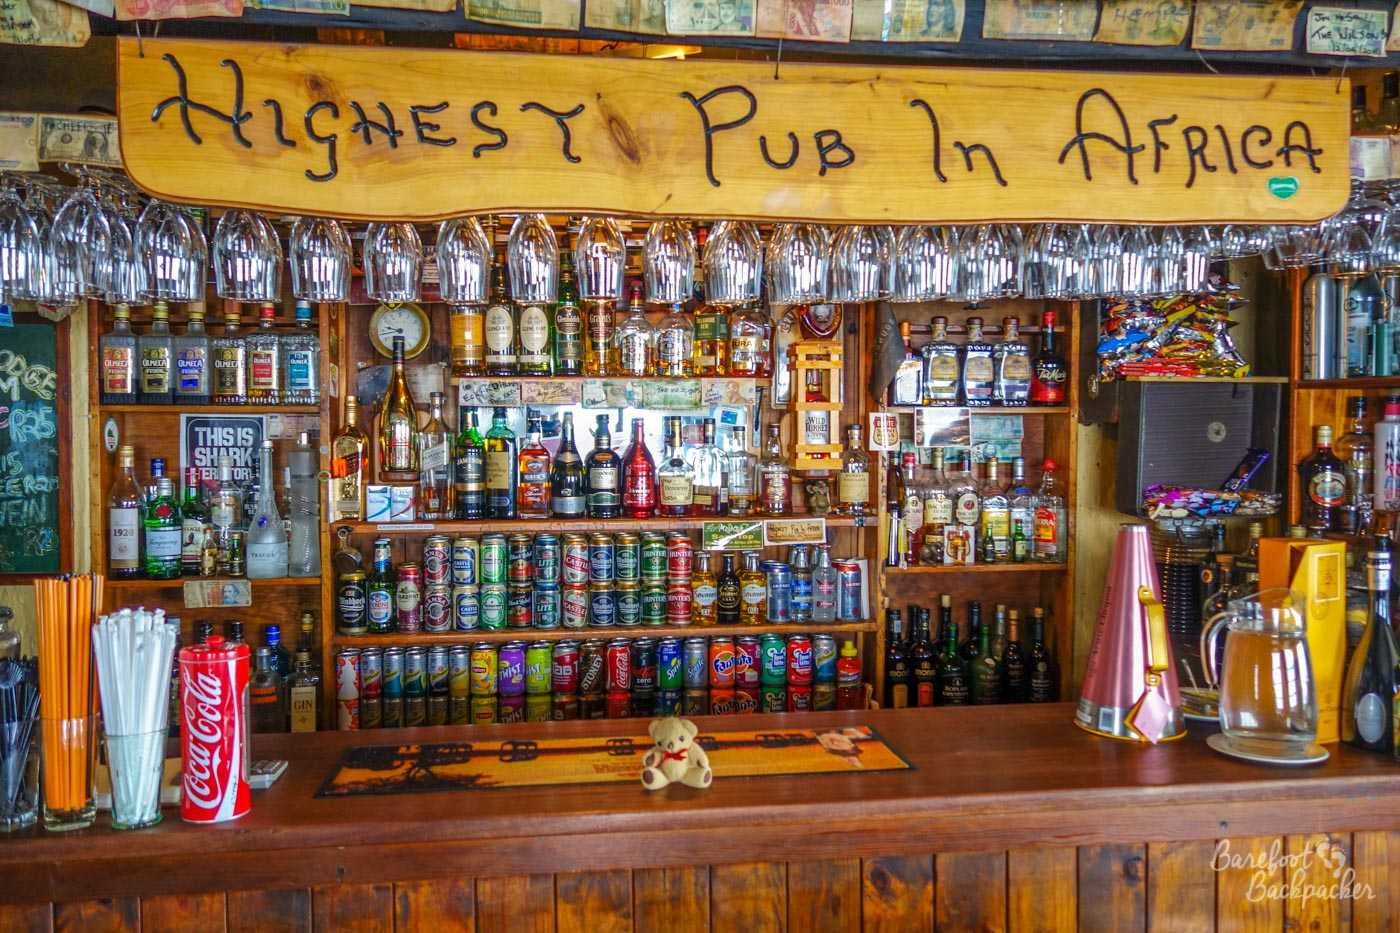 Unable to go for a hike, Baby Ian sits by the bar at the Highest Pub in Africa, in the Sani Pass Lodge, Lesotho